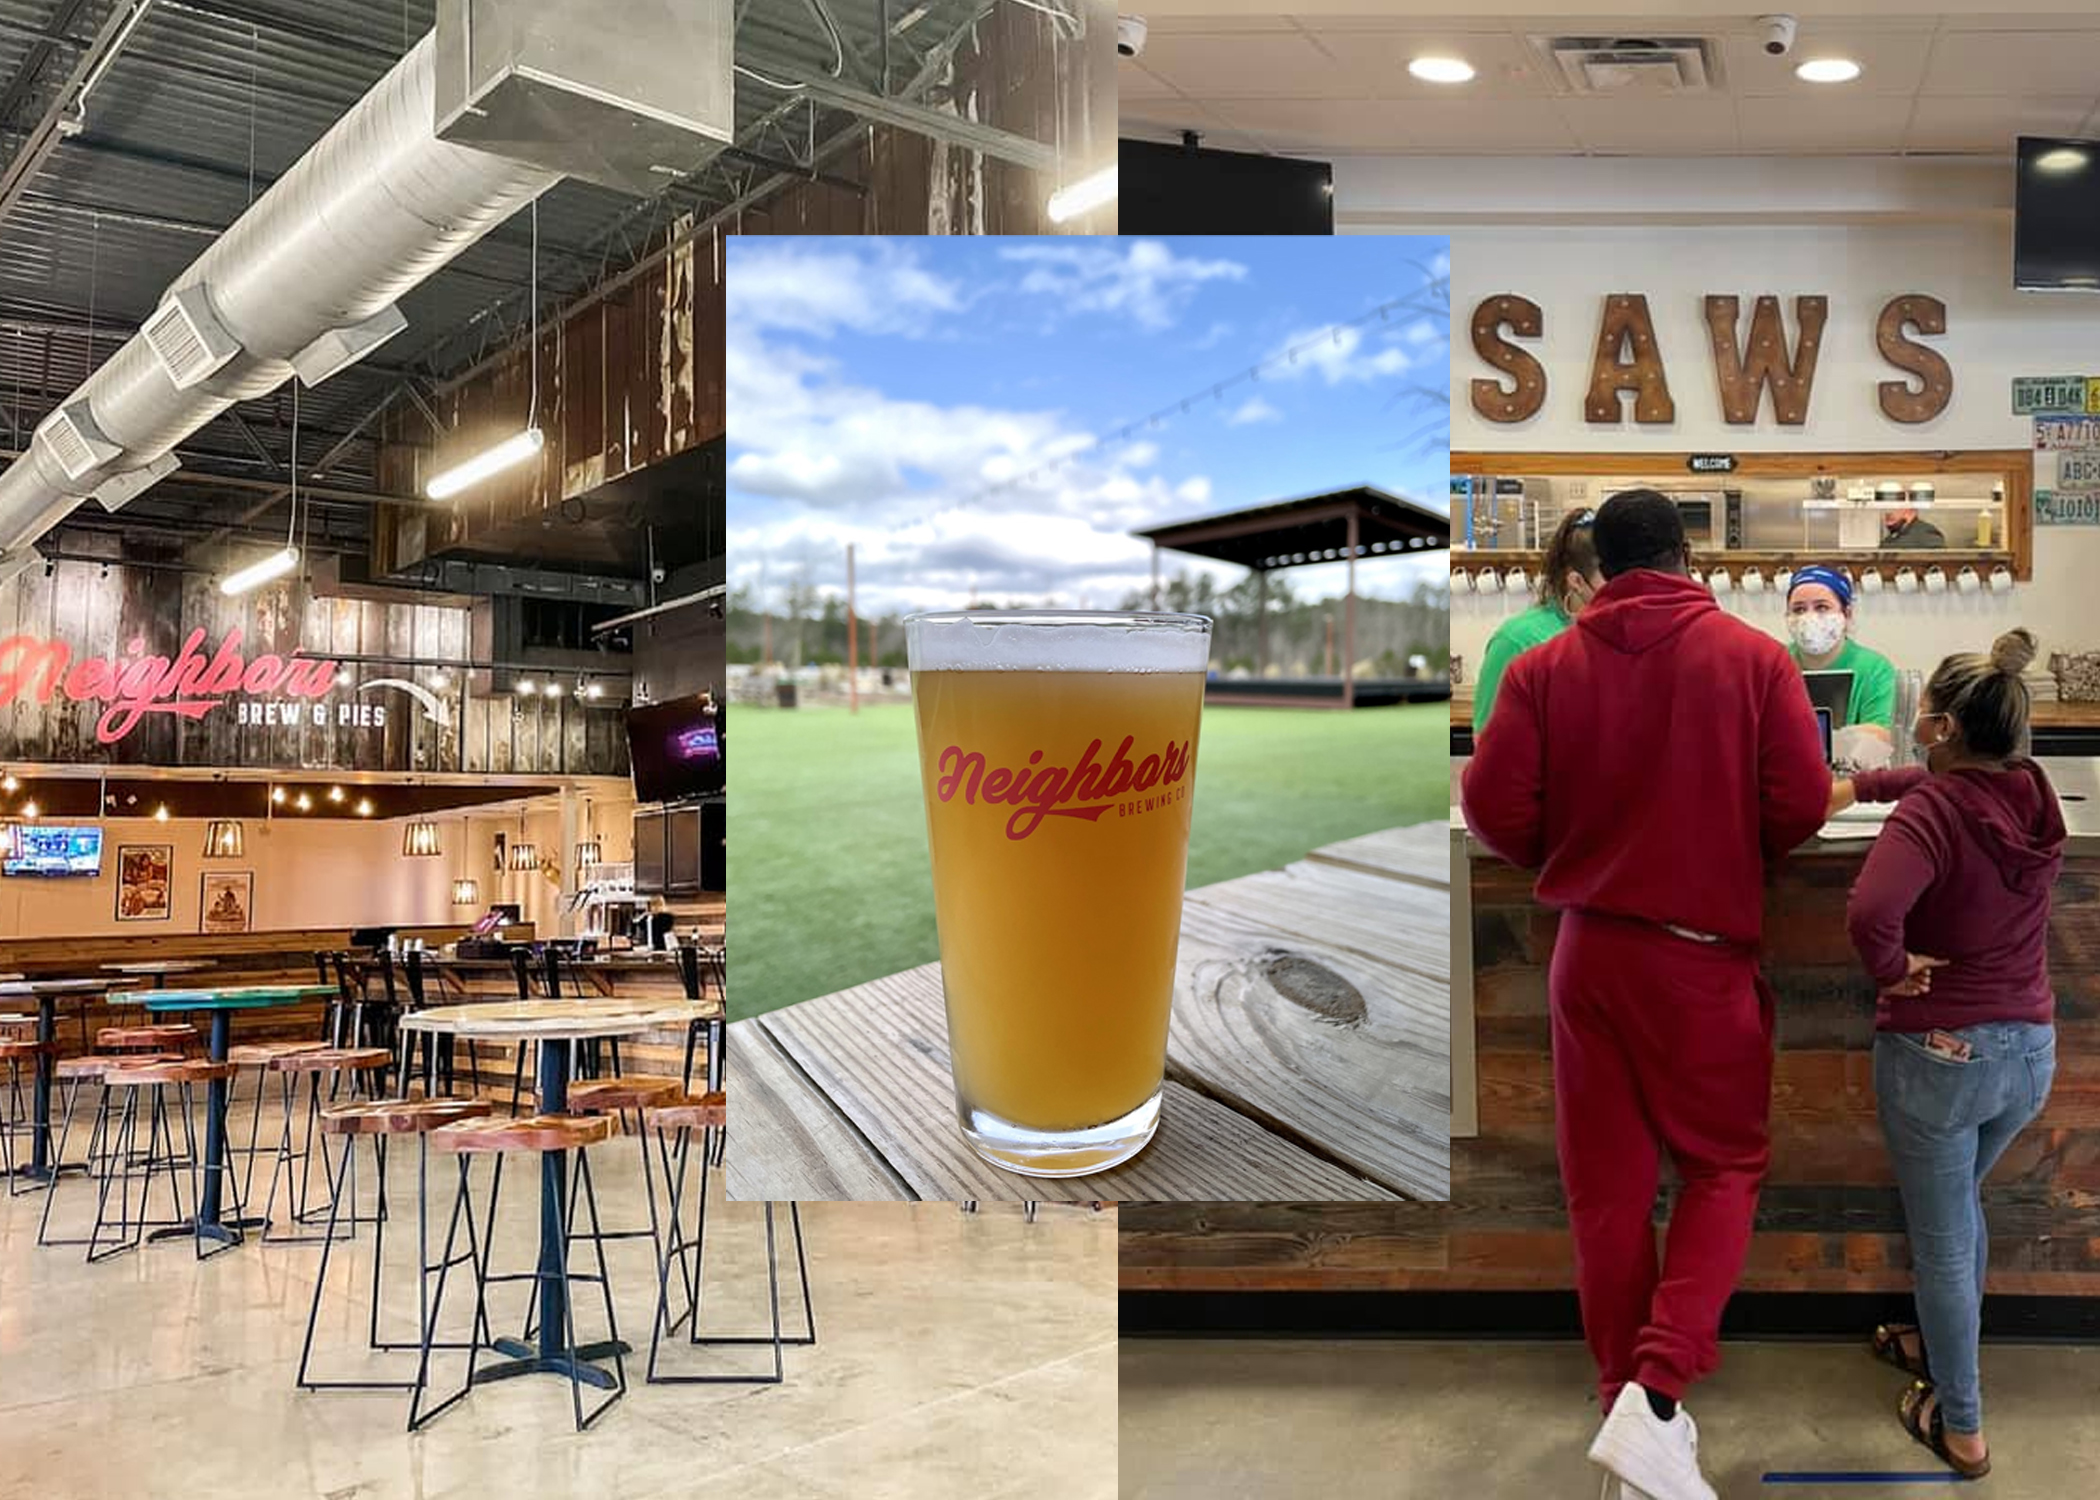 The Backyard in Leeds to celebrate grand opening of Saw's BBQ, new brewery this week